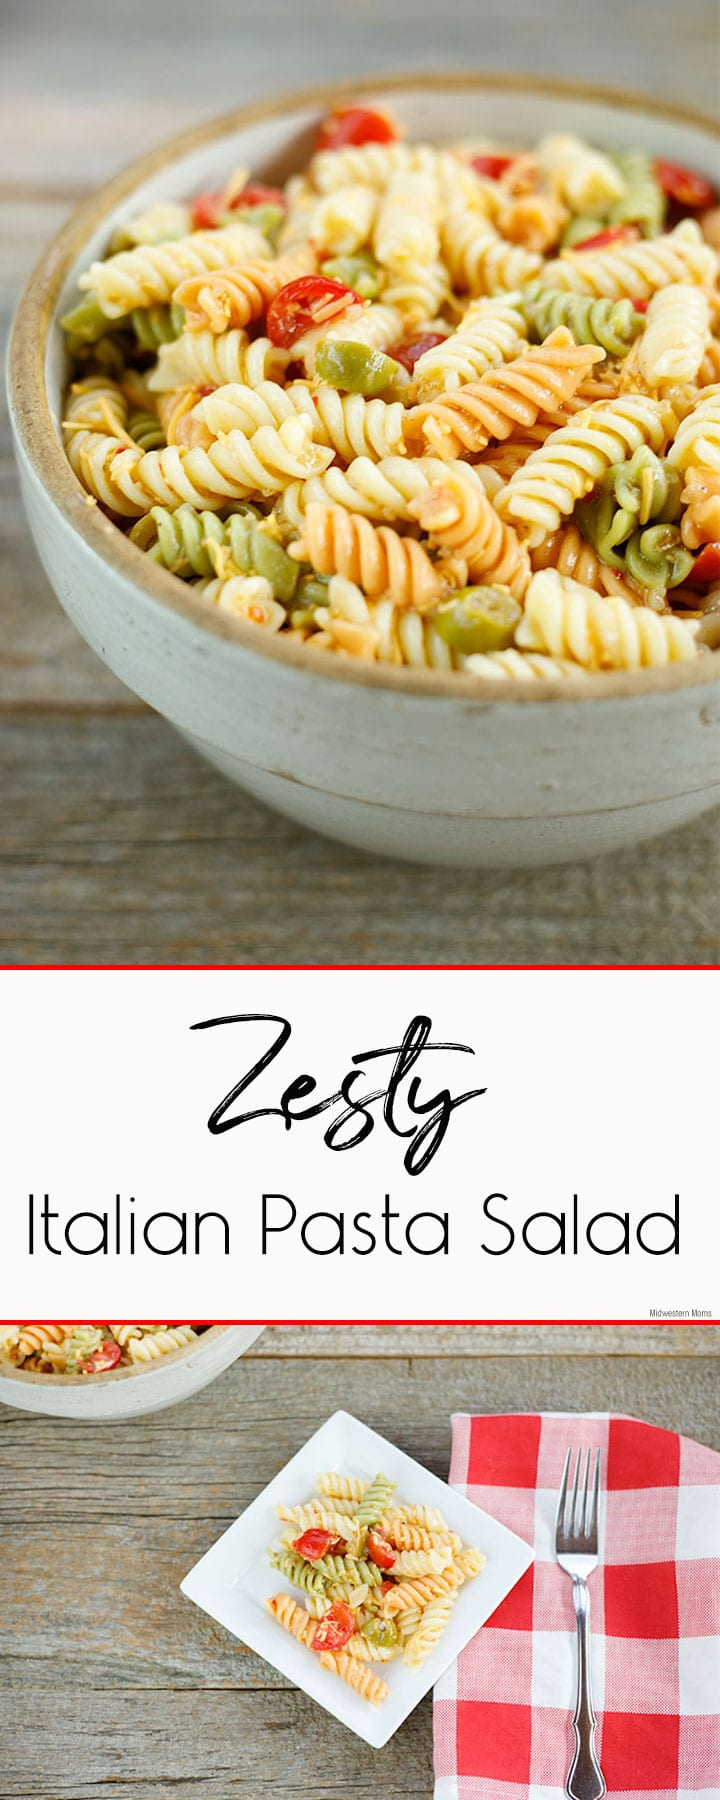 Easy Zesty Italian Pasta Salad that is the perfect side dish to any meal! Customize this tri-colored pasta salad with your favorite veggies for a unique flavor.